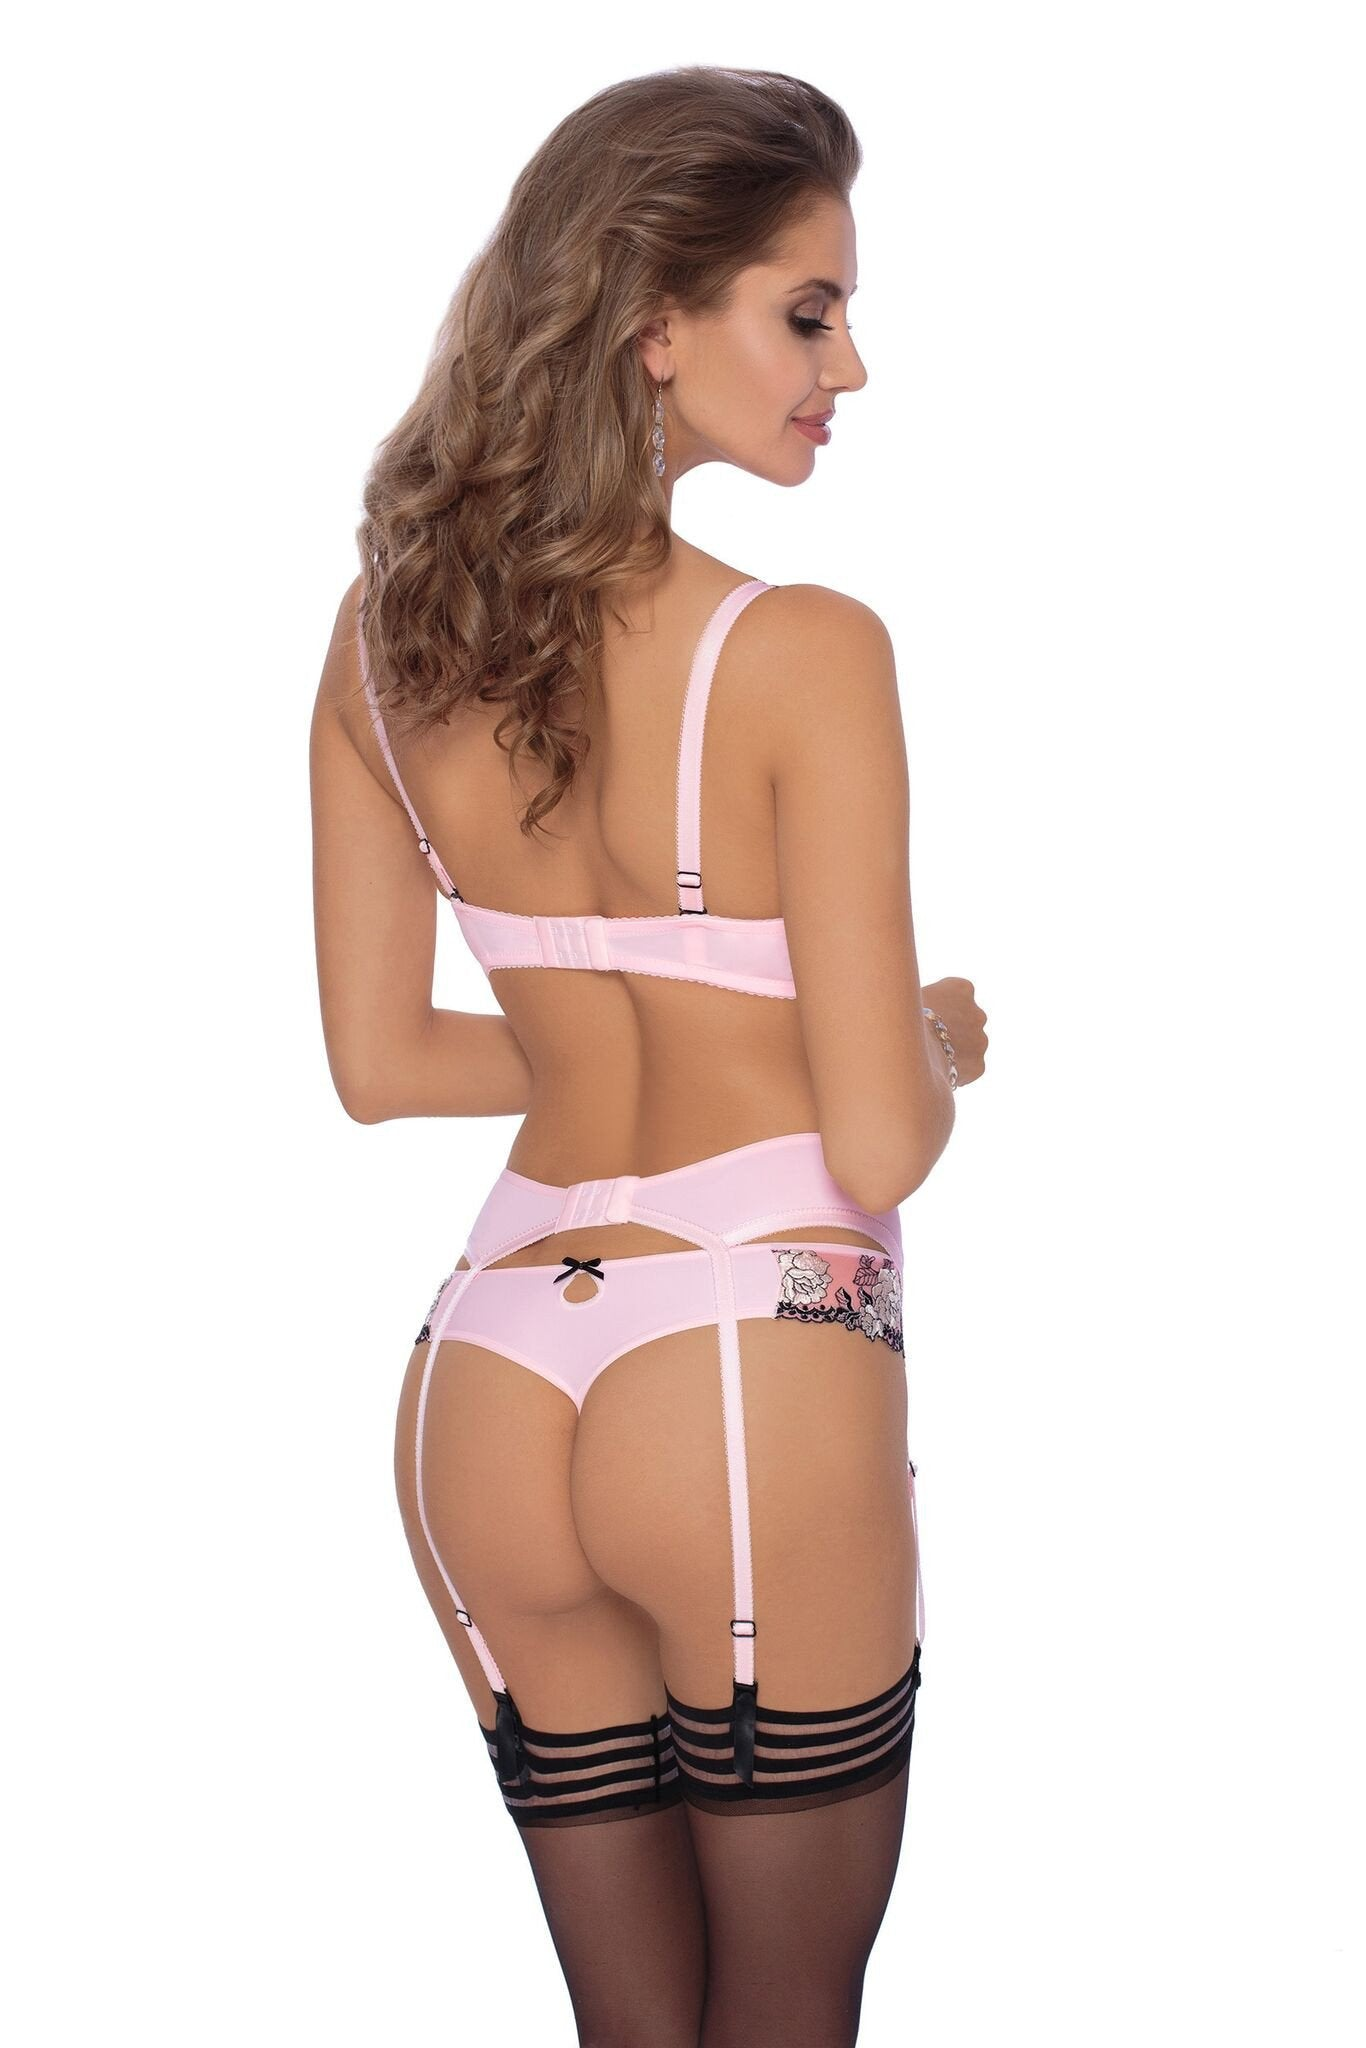 Roza Natali Suspender Belt (Pink) - Suspender Belts - Roza - Charm and Lace Boutique